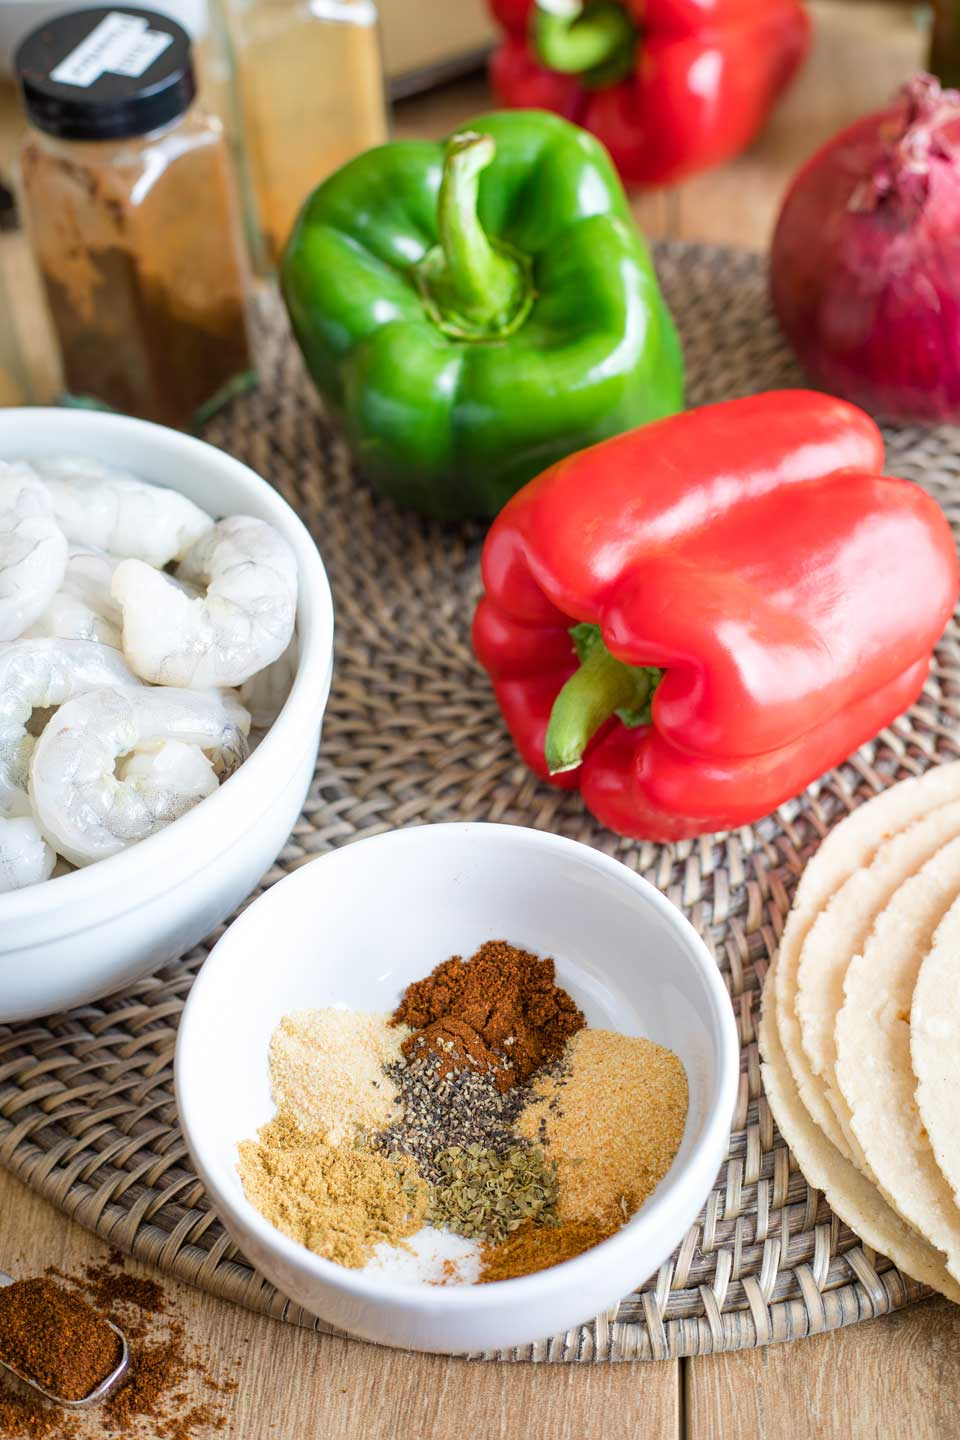 Ingredients to make this shrimp fajitas recipe, including a bowl of spices, raw shrimp, tortillas, peppers, and a red onion.